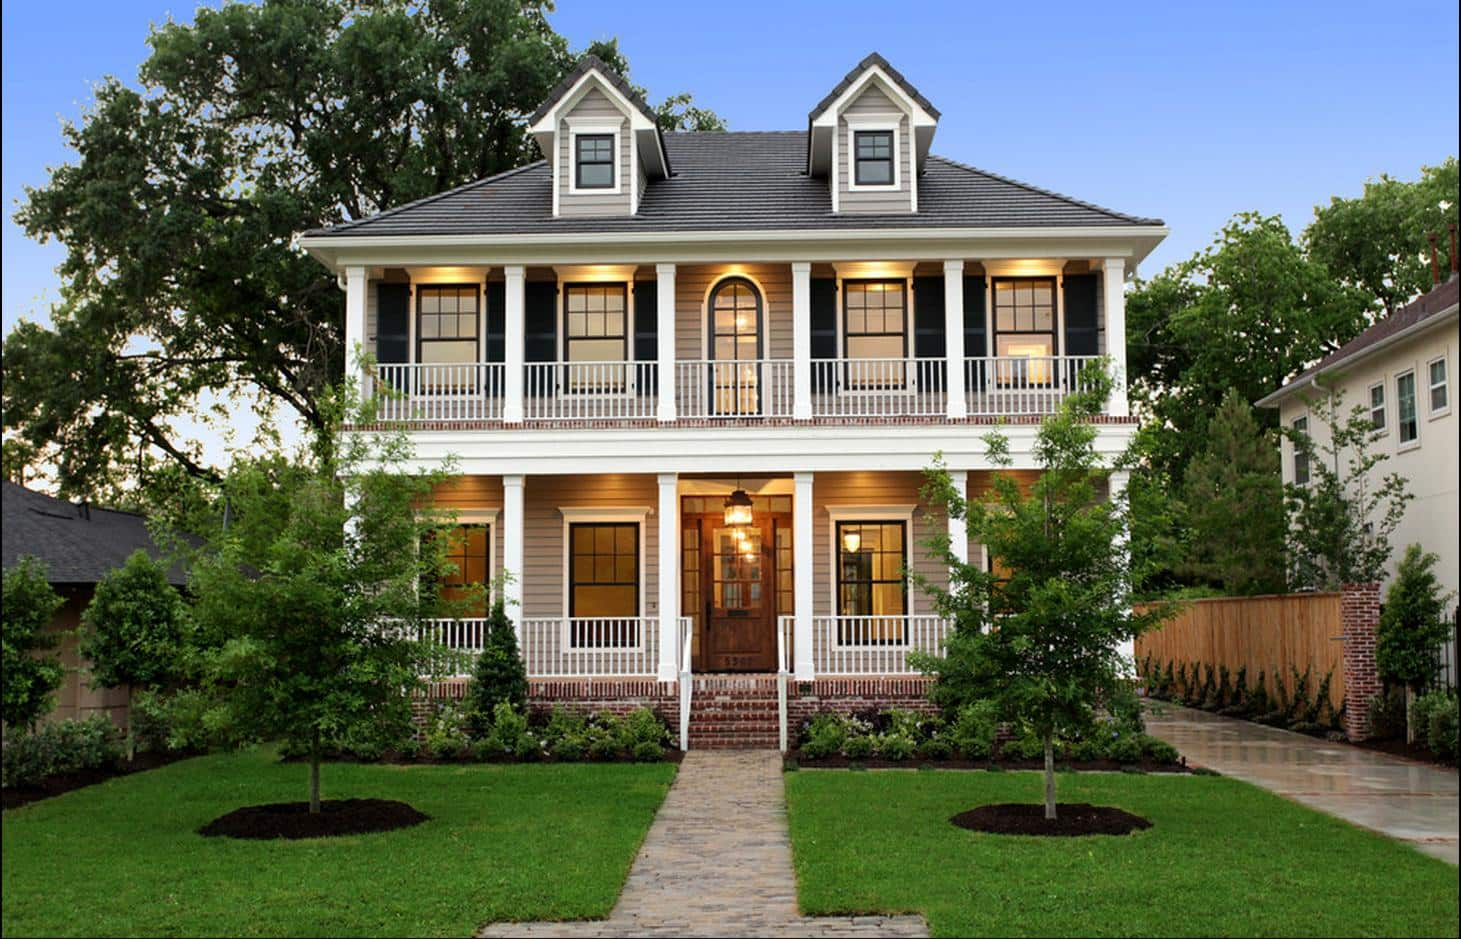 Upscale modern Southern Style home designs